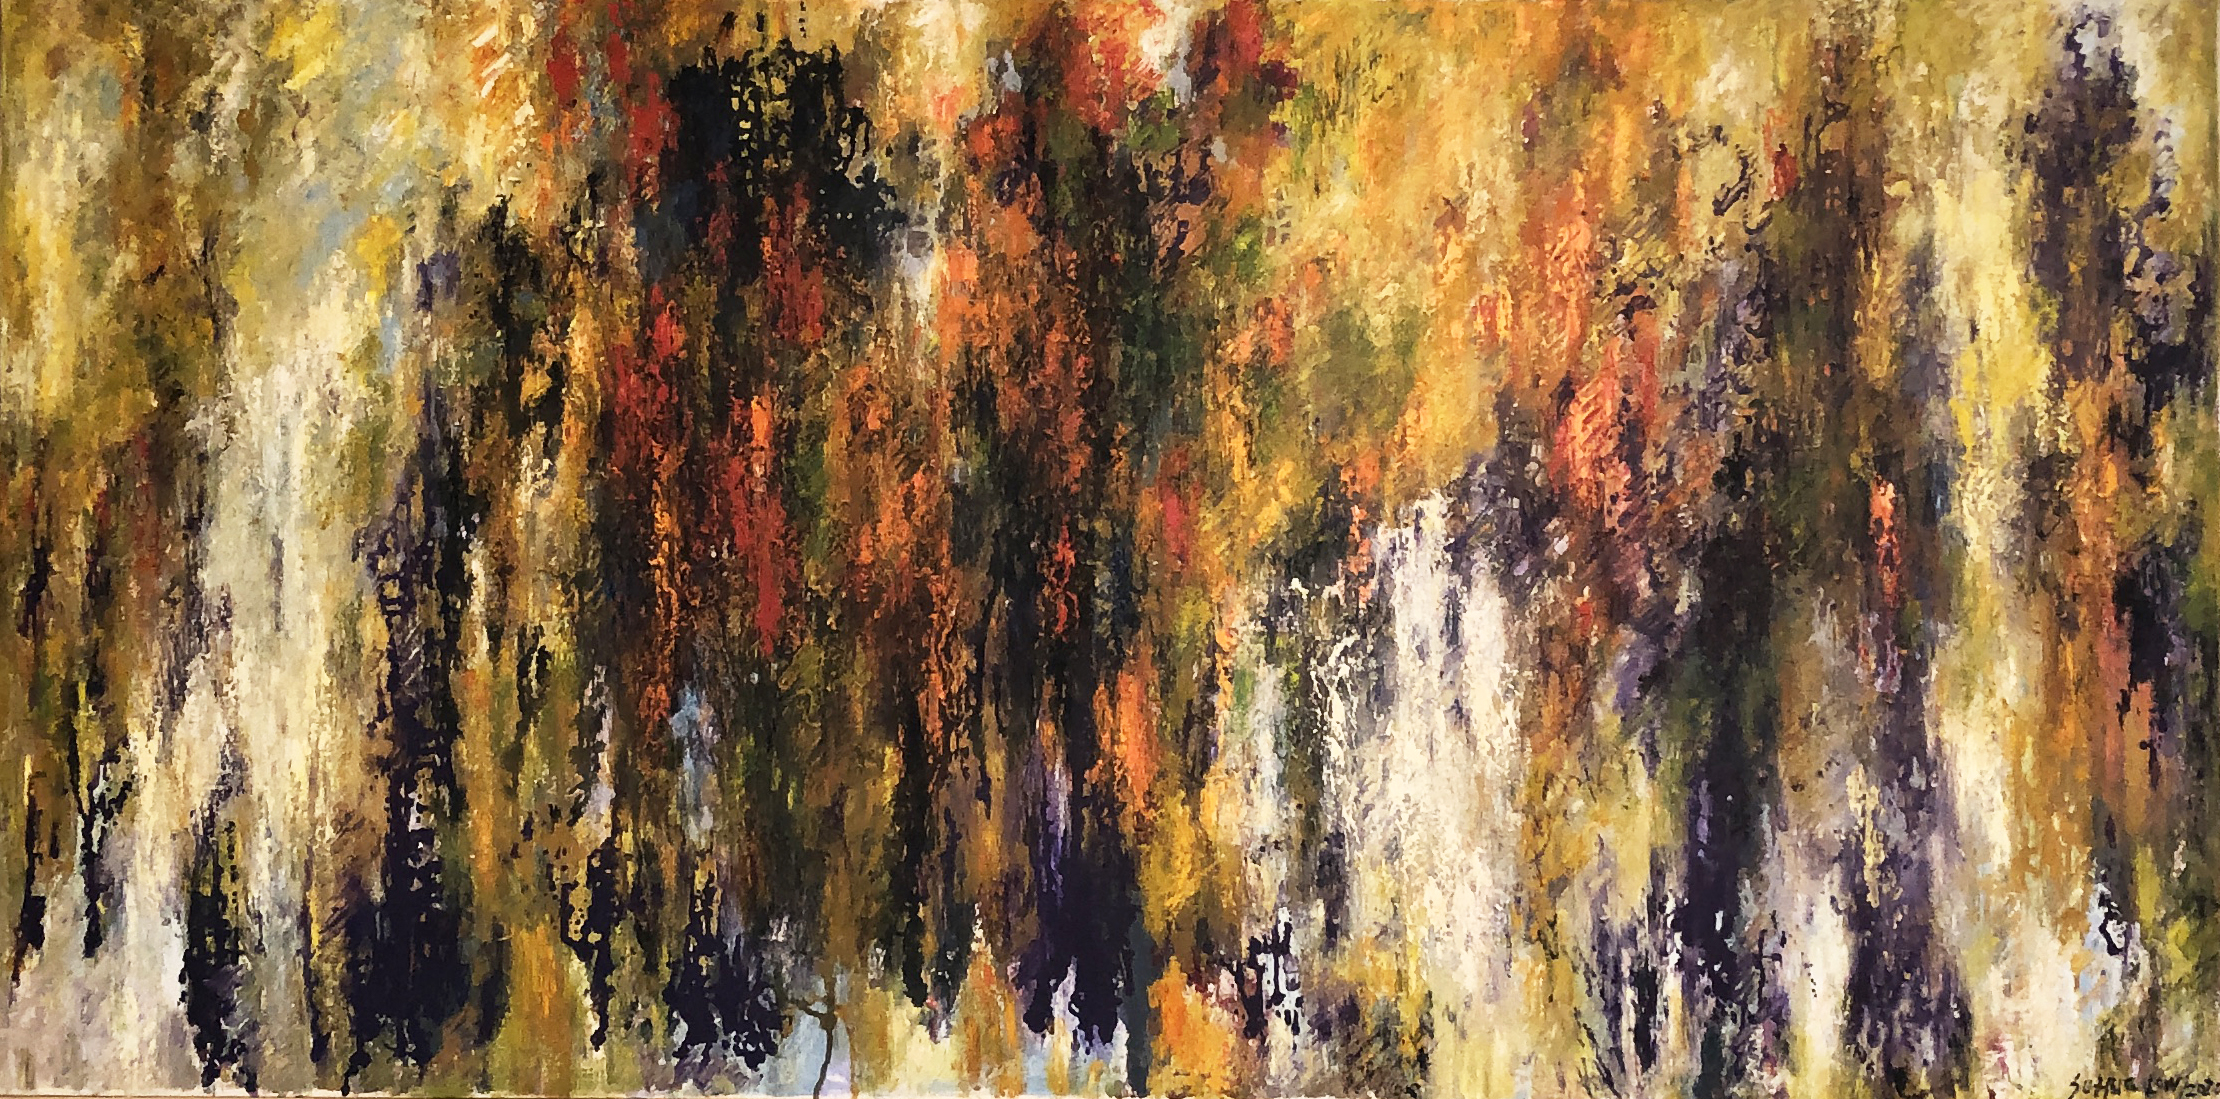 Seasons of Change Exhibition at Rockland Center for the Arts